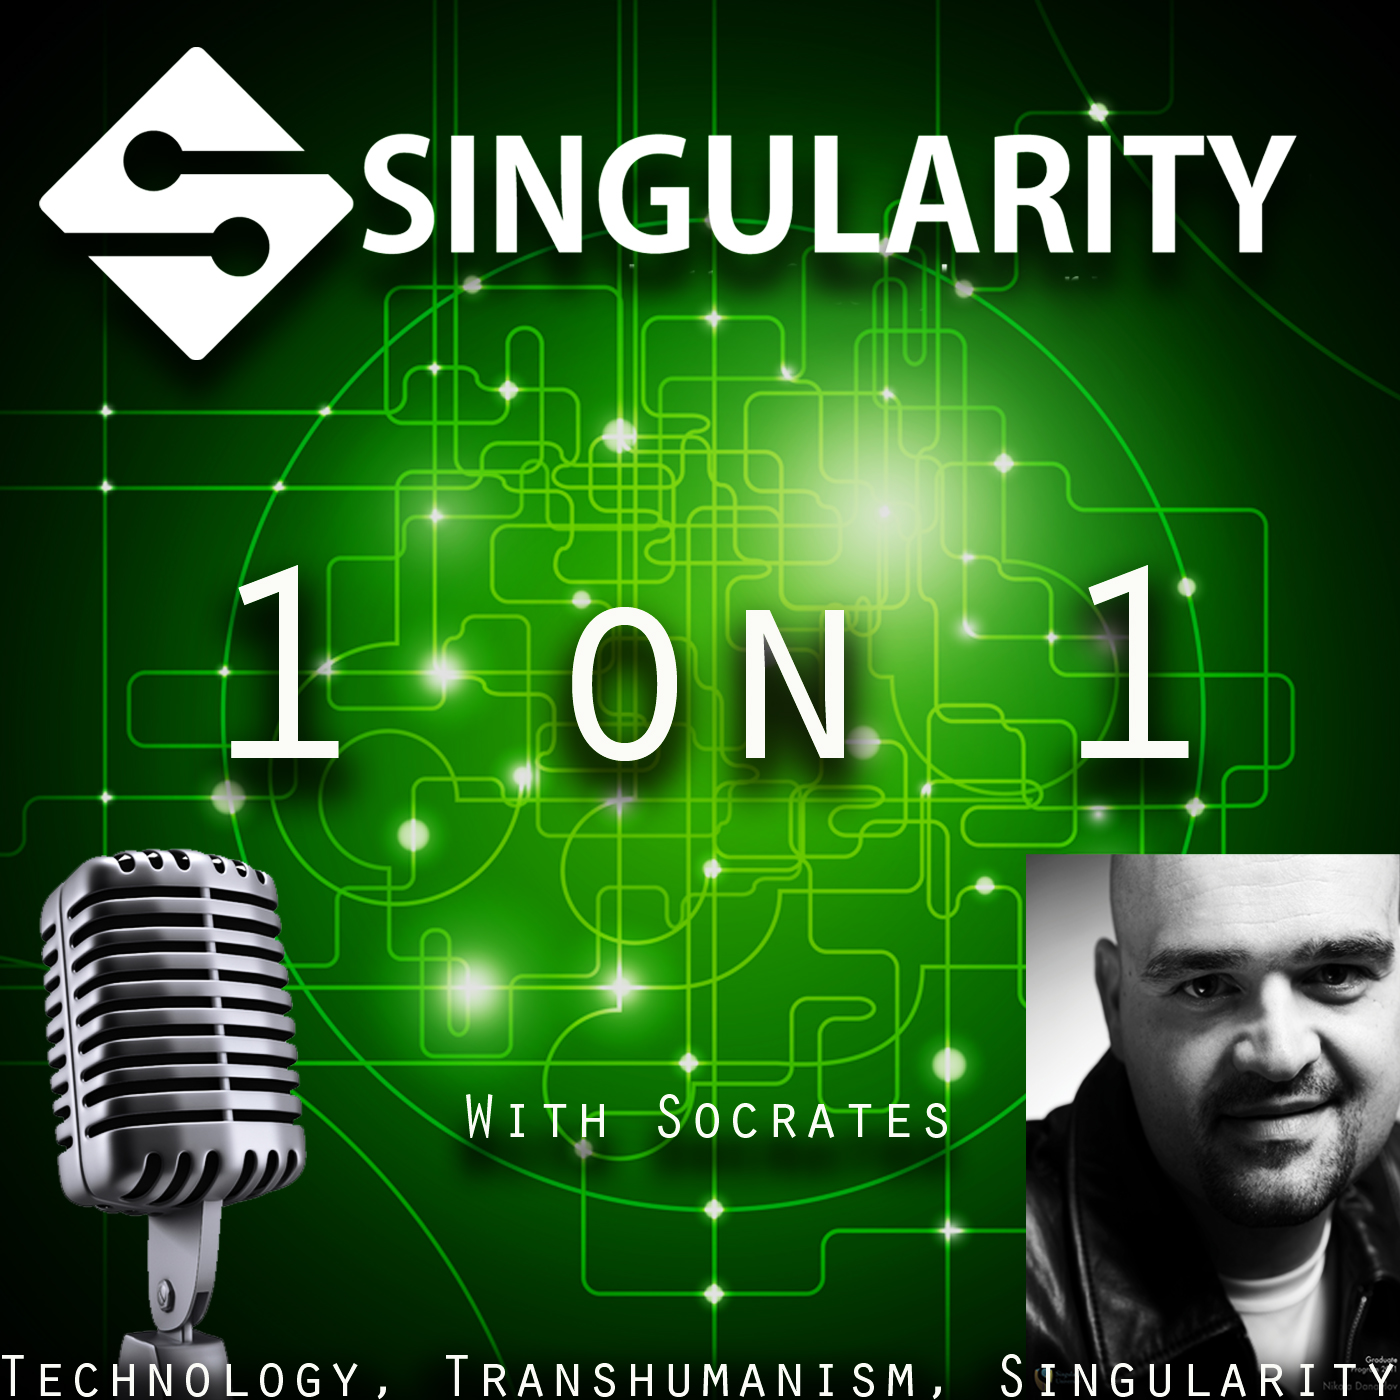 Ray, Aubrey, Natasha And Many Others Support Singularity 1 on 1. What About You?!